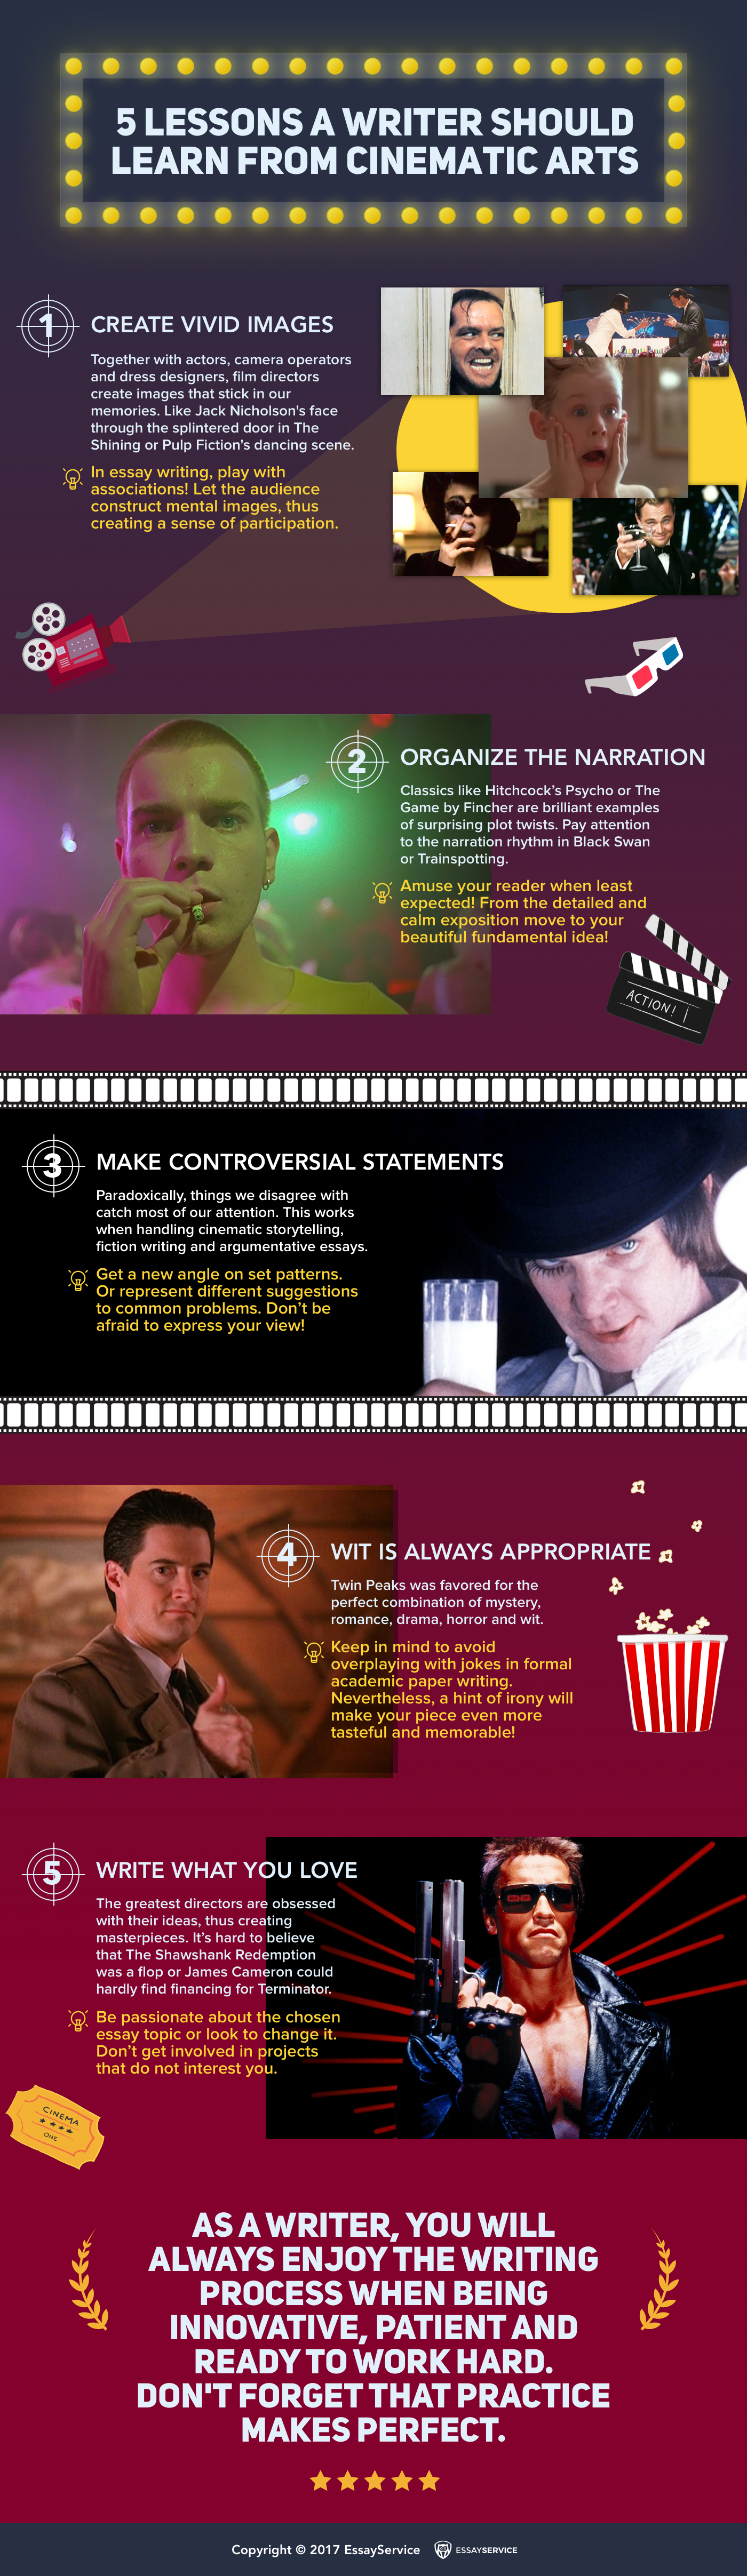 cinematic-arts-infographic